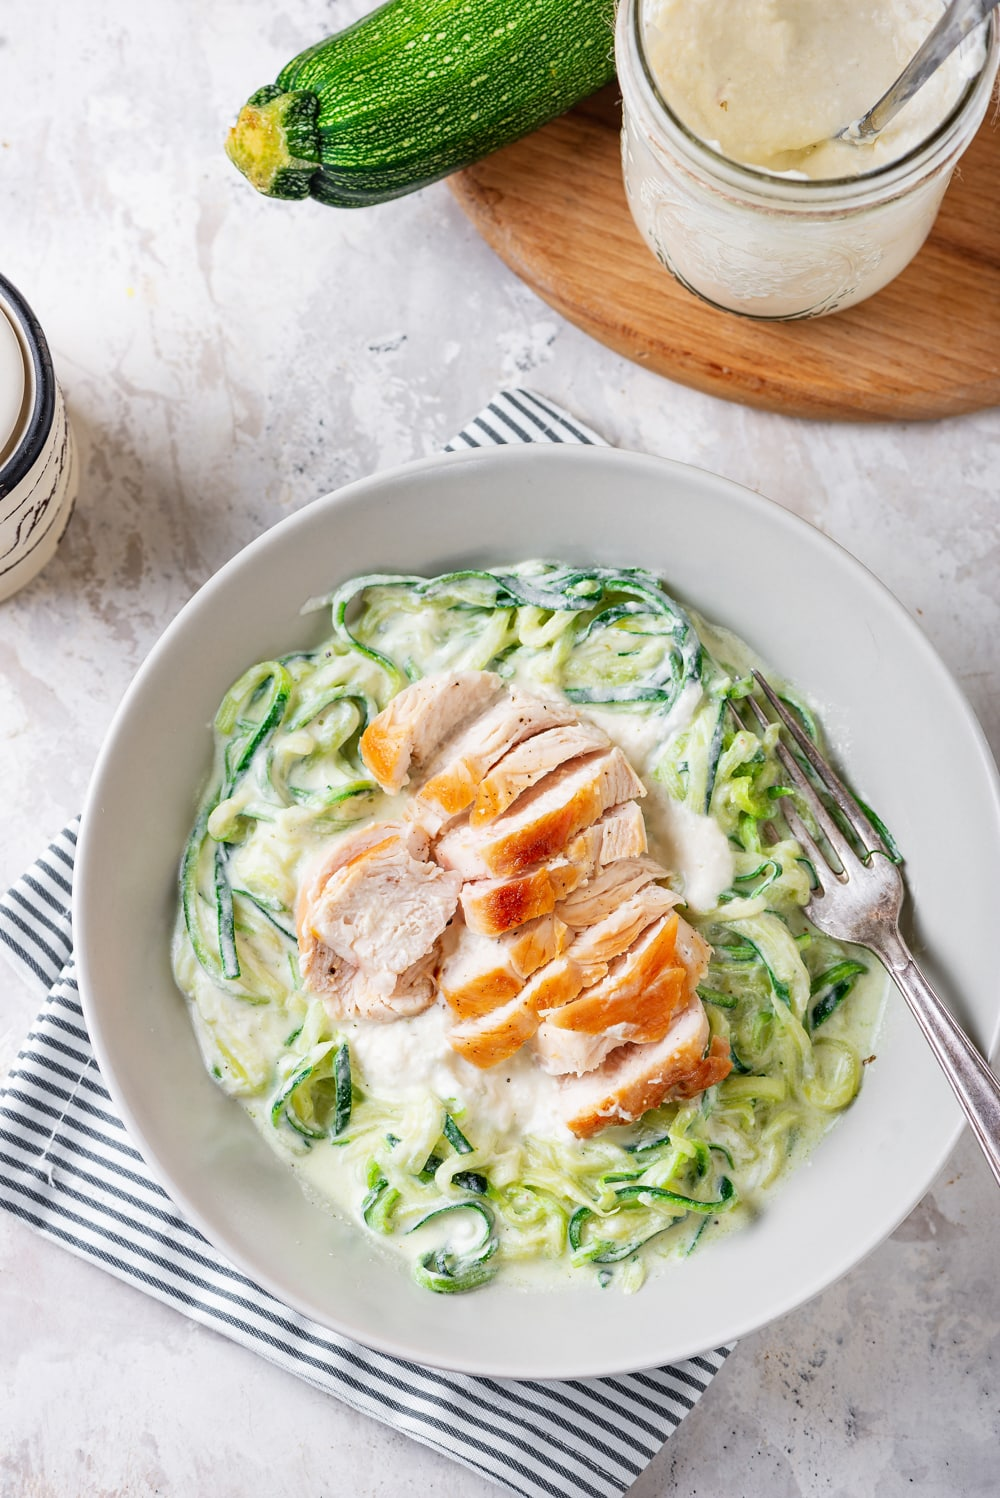 A bowl of zuchinni noodles that have been covered in alfredo sauce, and topped with a cut-up chicken breast.